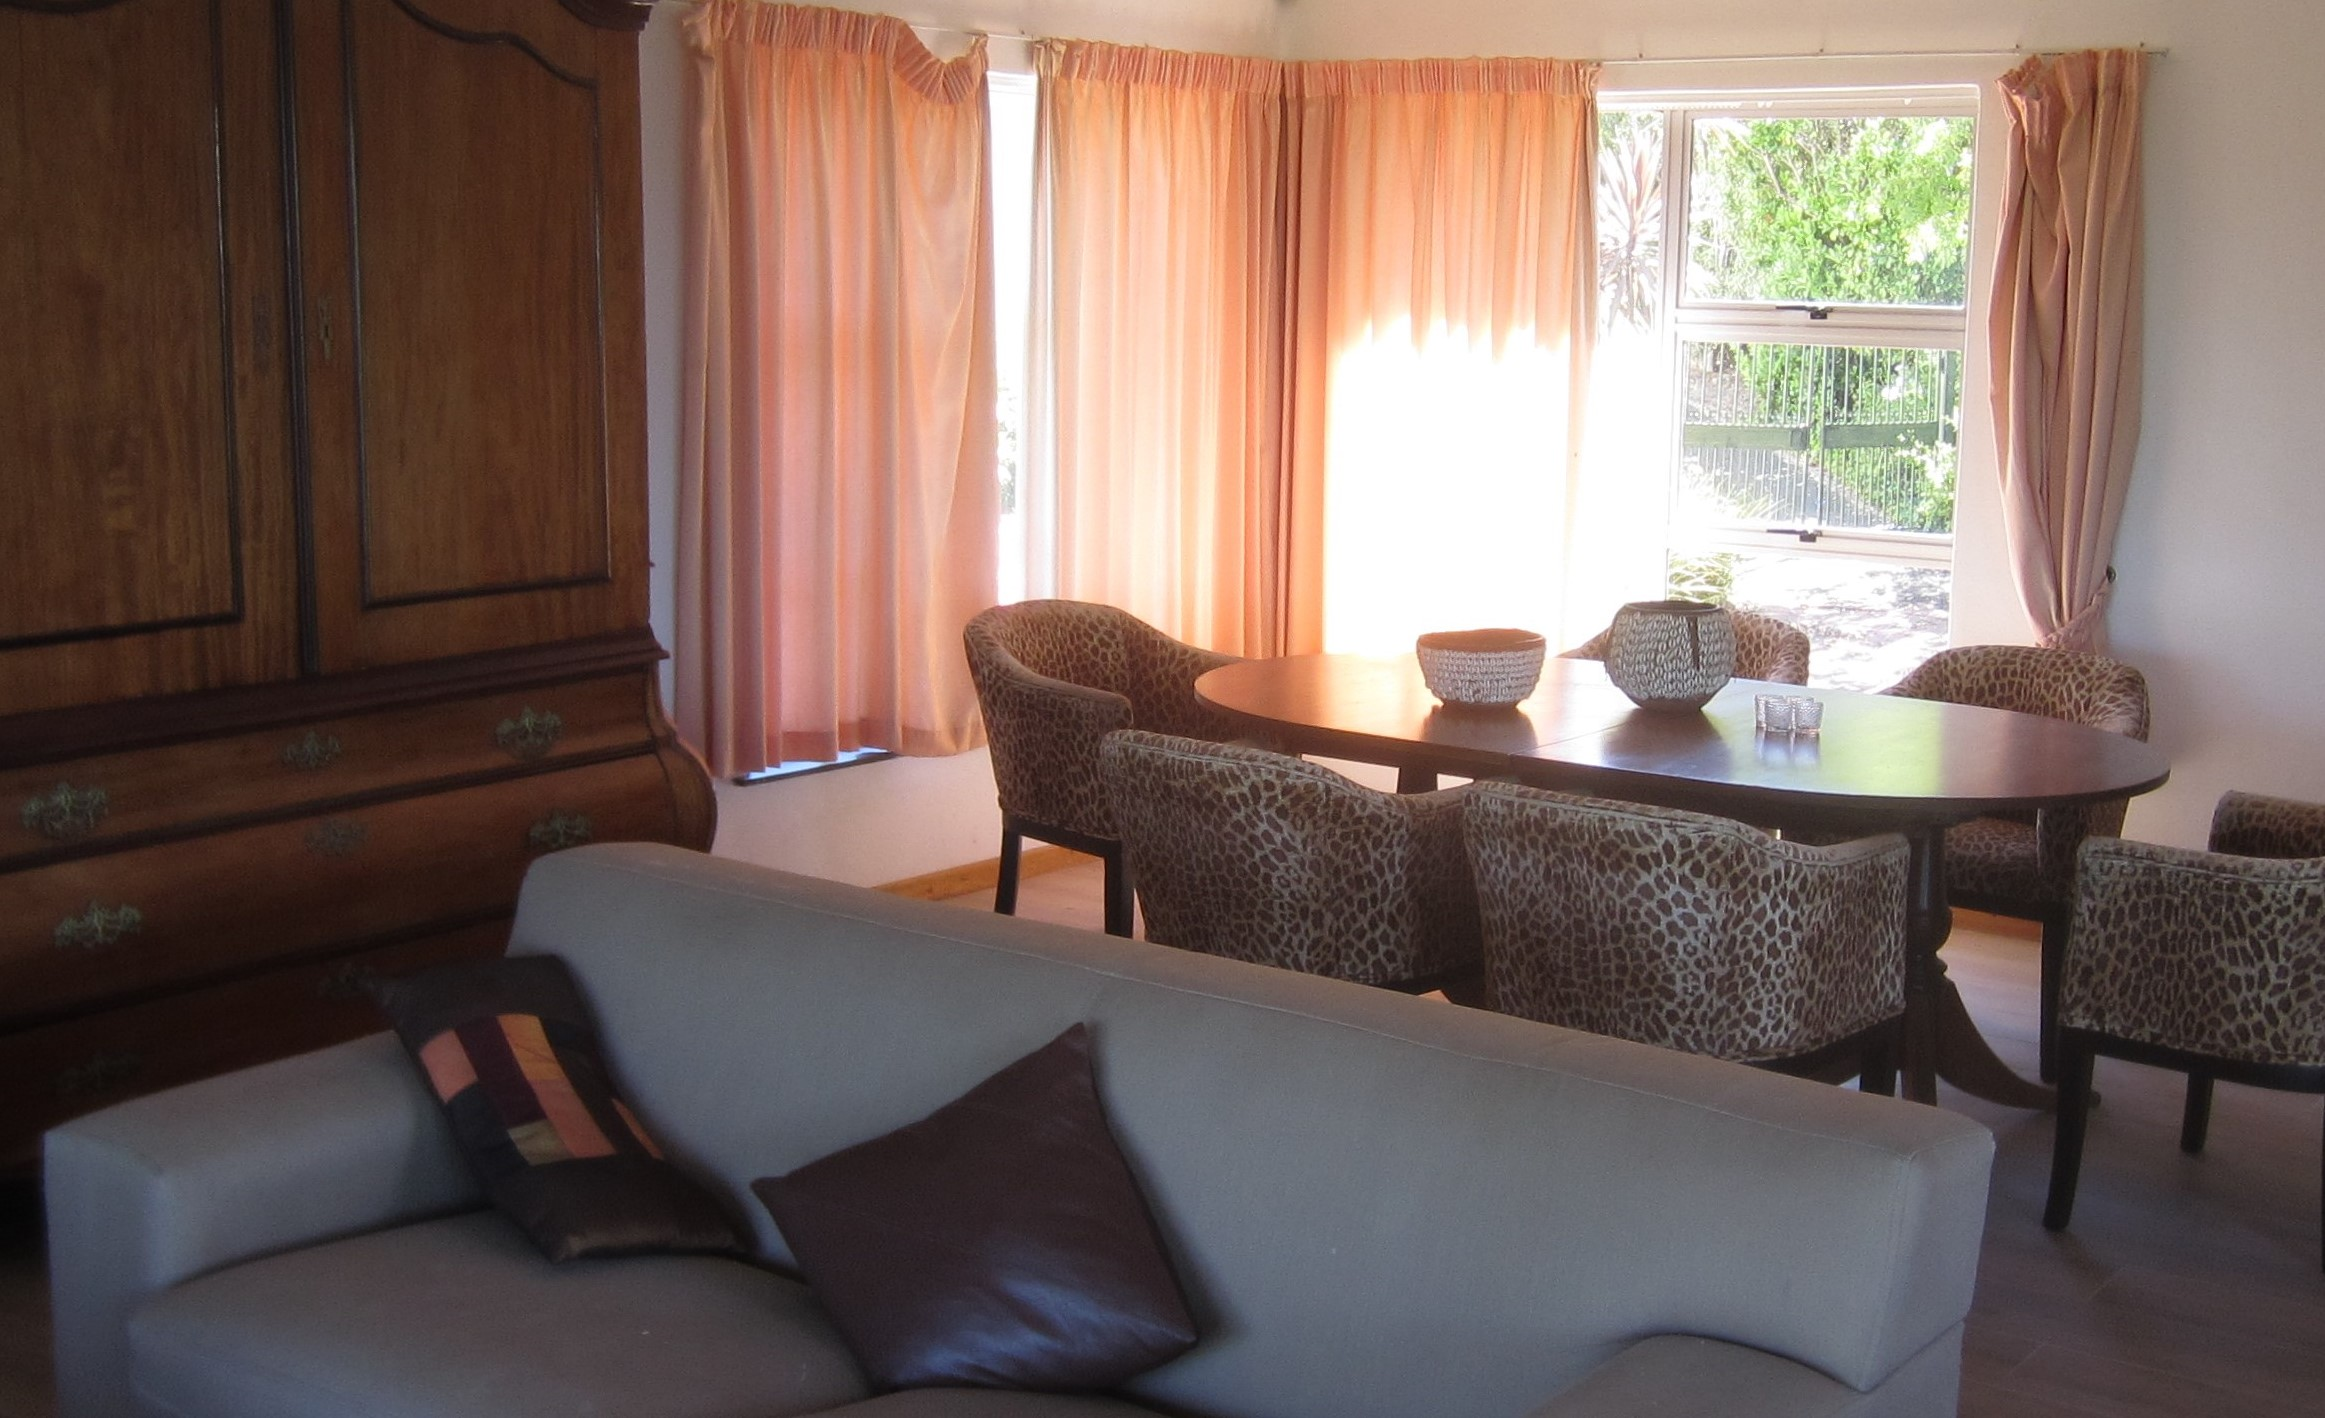 3 Bedroom House for sale in Monte Sereno ENT0015864 : photo#15